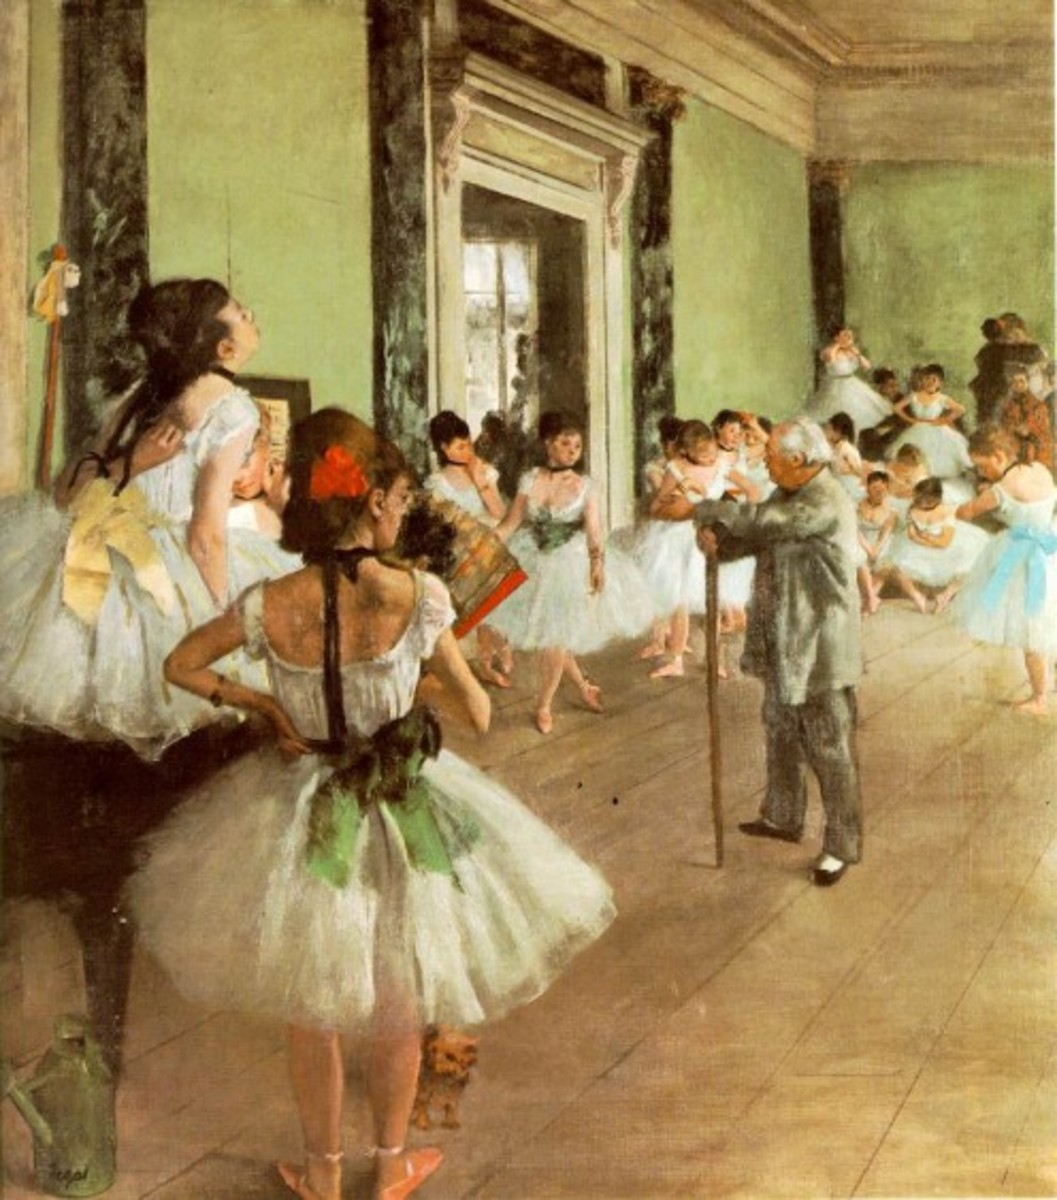 """Dance Class"" painted by Edgar Degas.  The dancers exemplify the tutus worn by ballerinas in the 19th century."